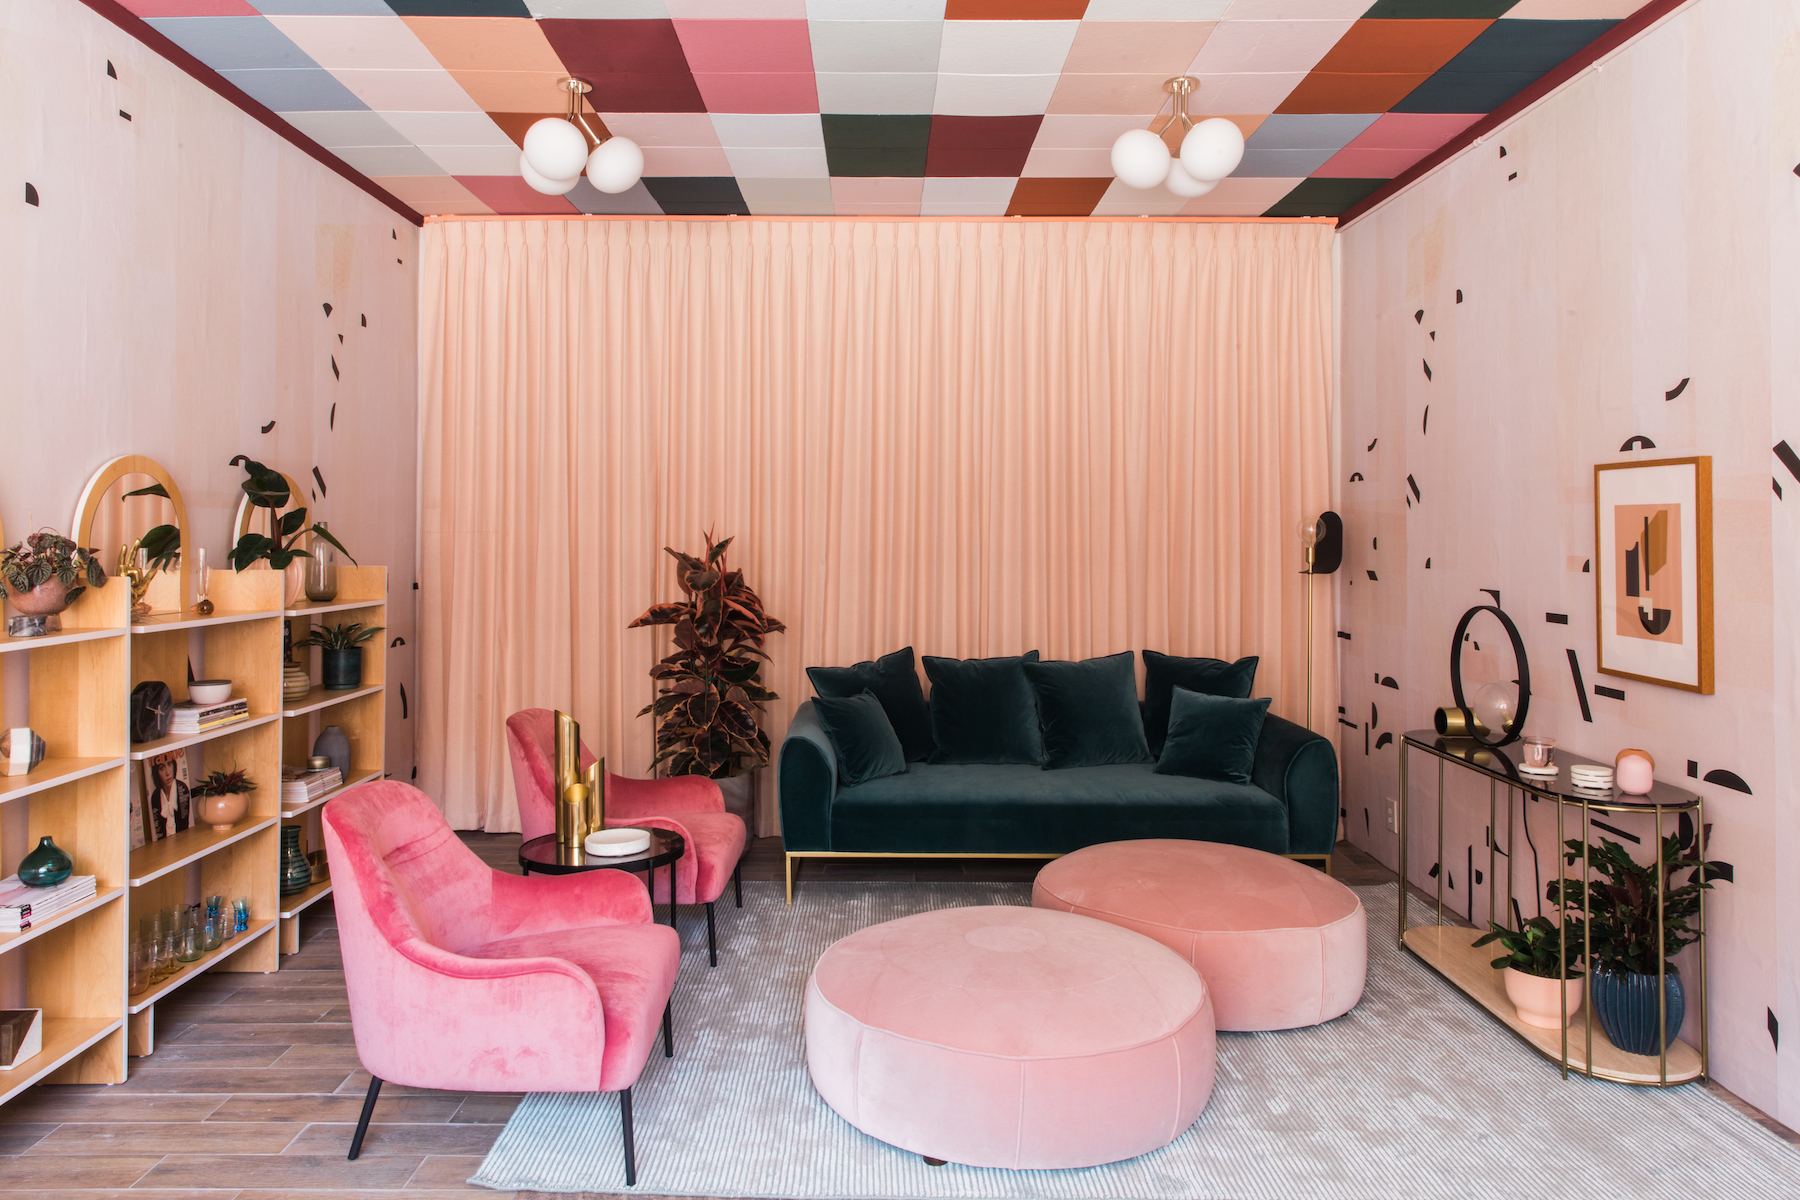 In pasadena an art deco dream with a vibrant checkered ceiling